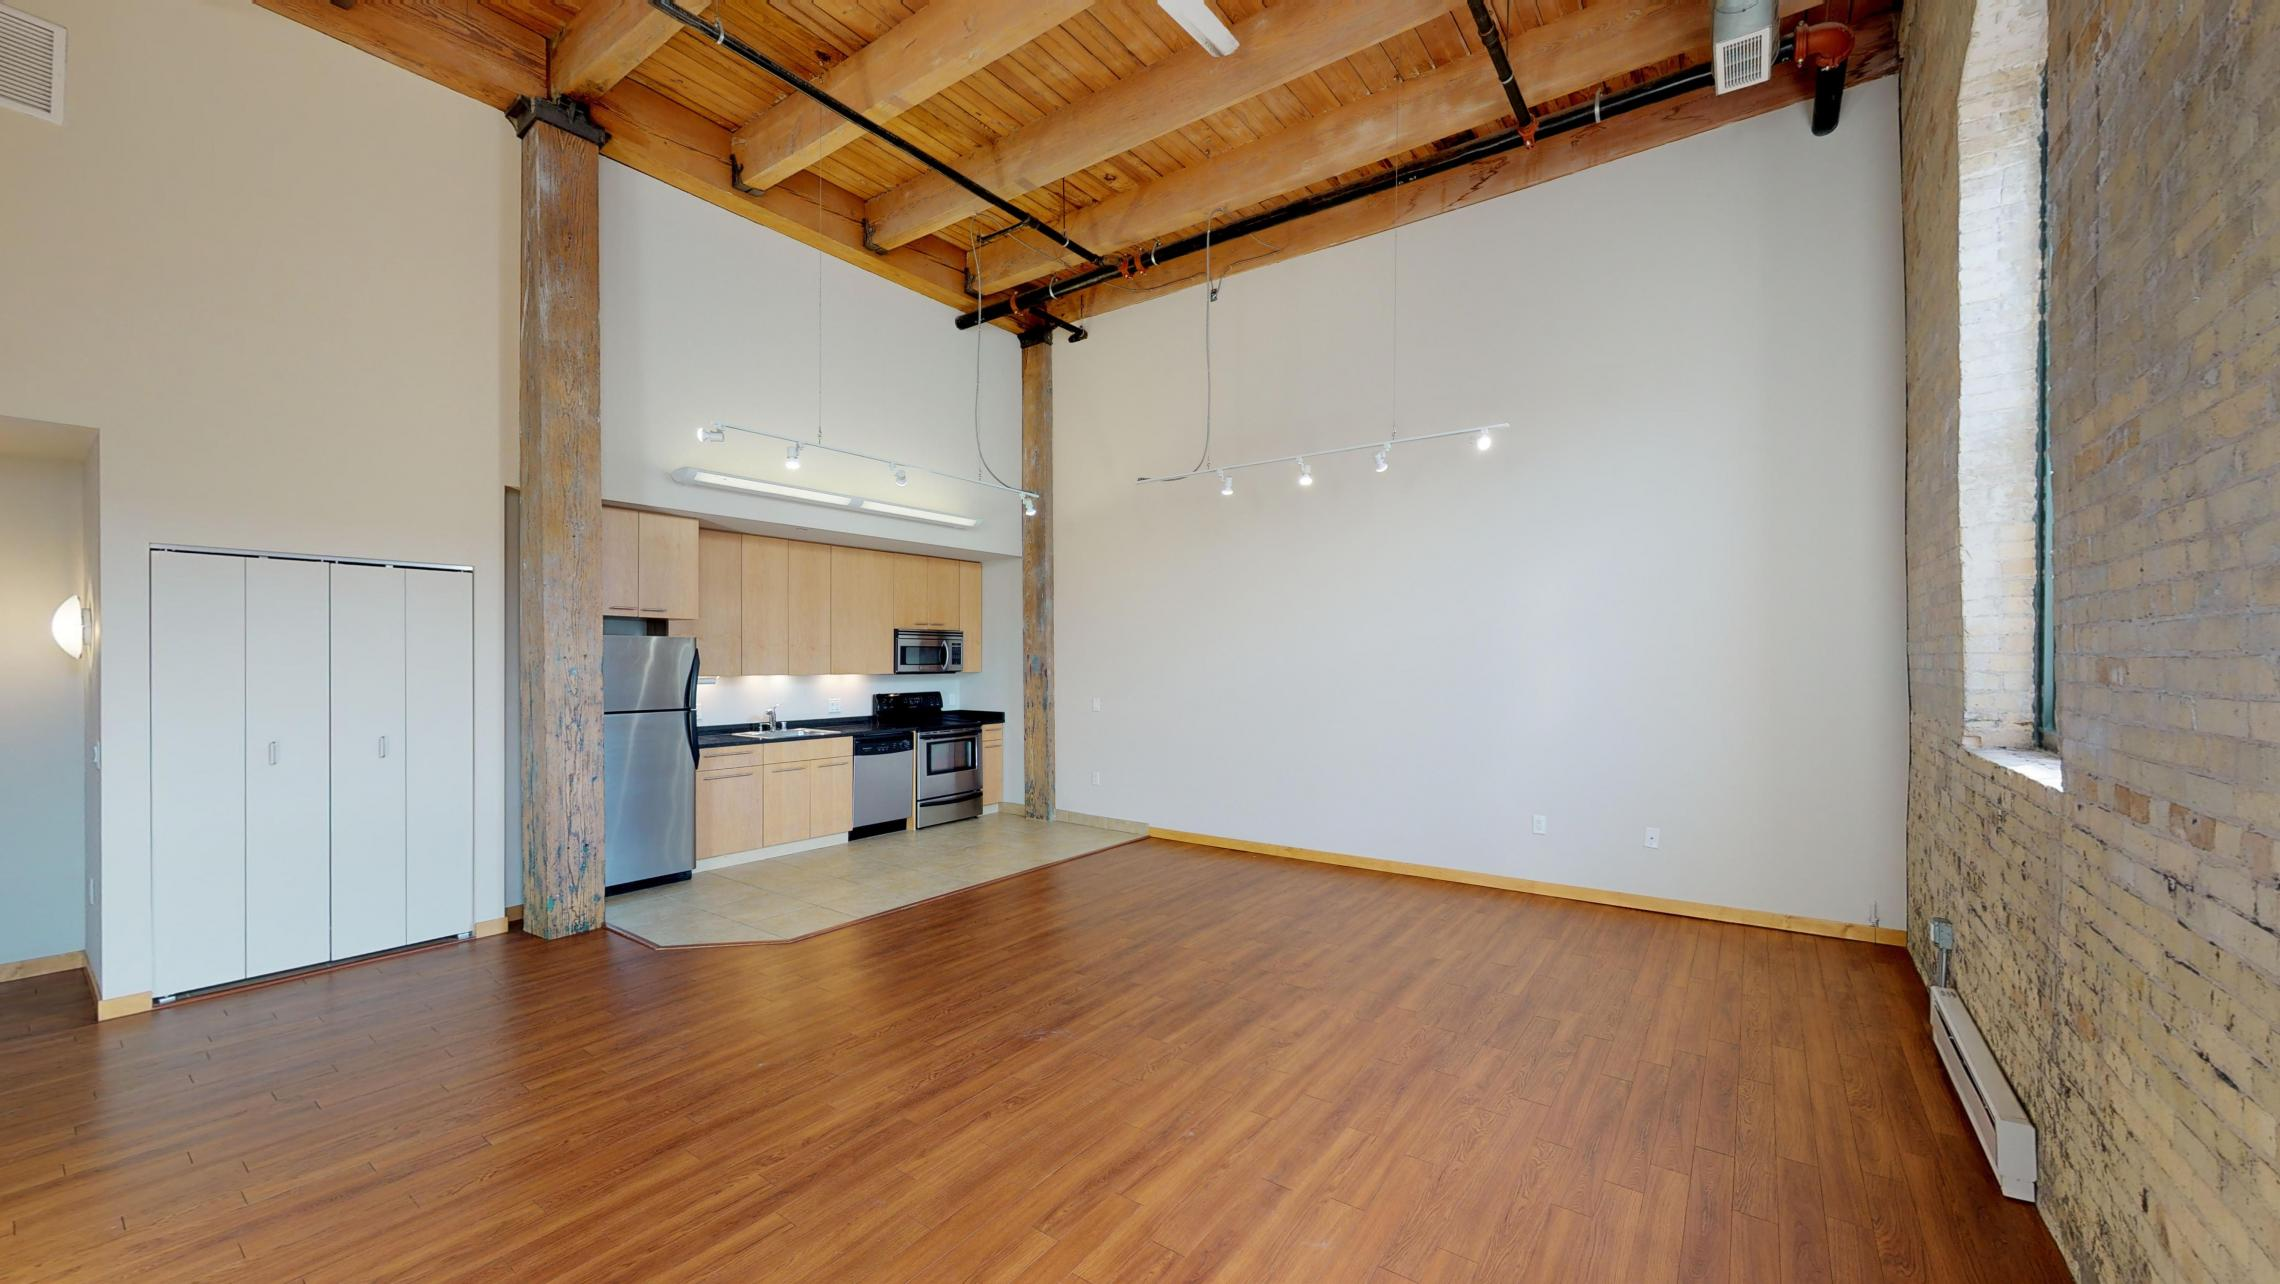 Tobacco-Lofts-Apartments-Lofted-Design-Unique-Upscale-Stunning-Sunshine-Cats-Lofted-Brick-Garage-Courtyard-Grill-Fitness-Historic-Yards-Warehouse-Apartment- E204-Lofted-Two-Bedroom